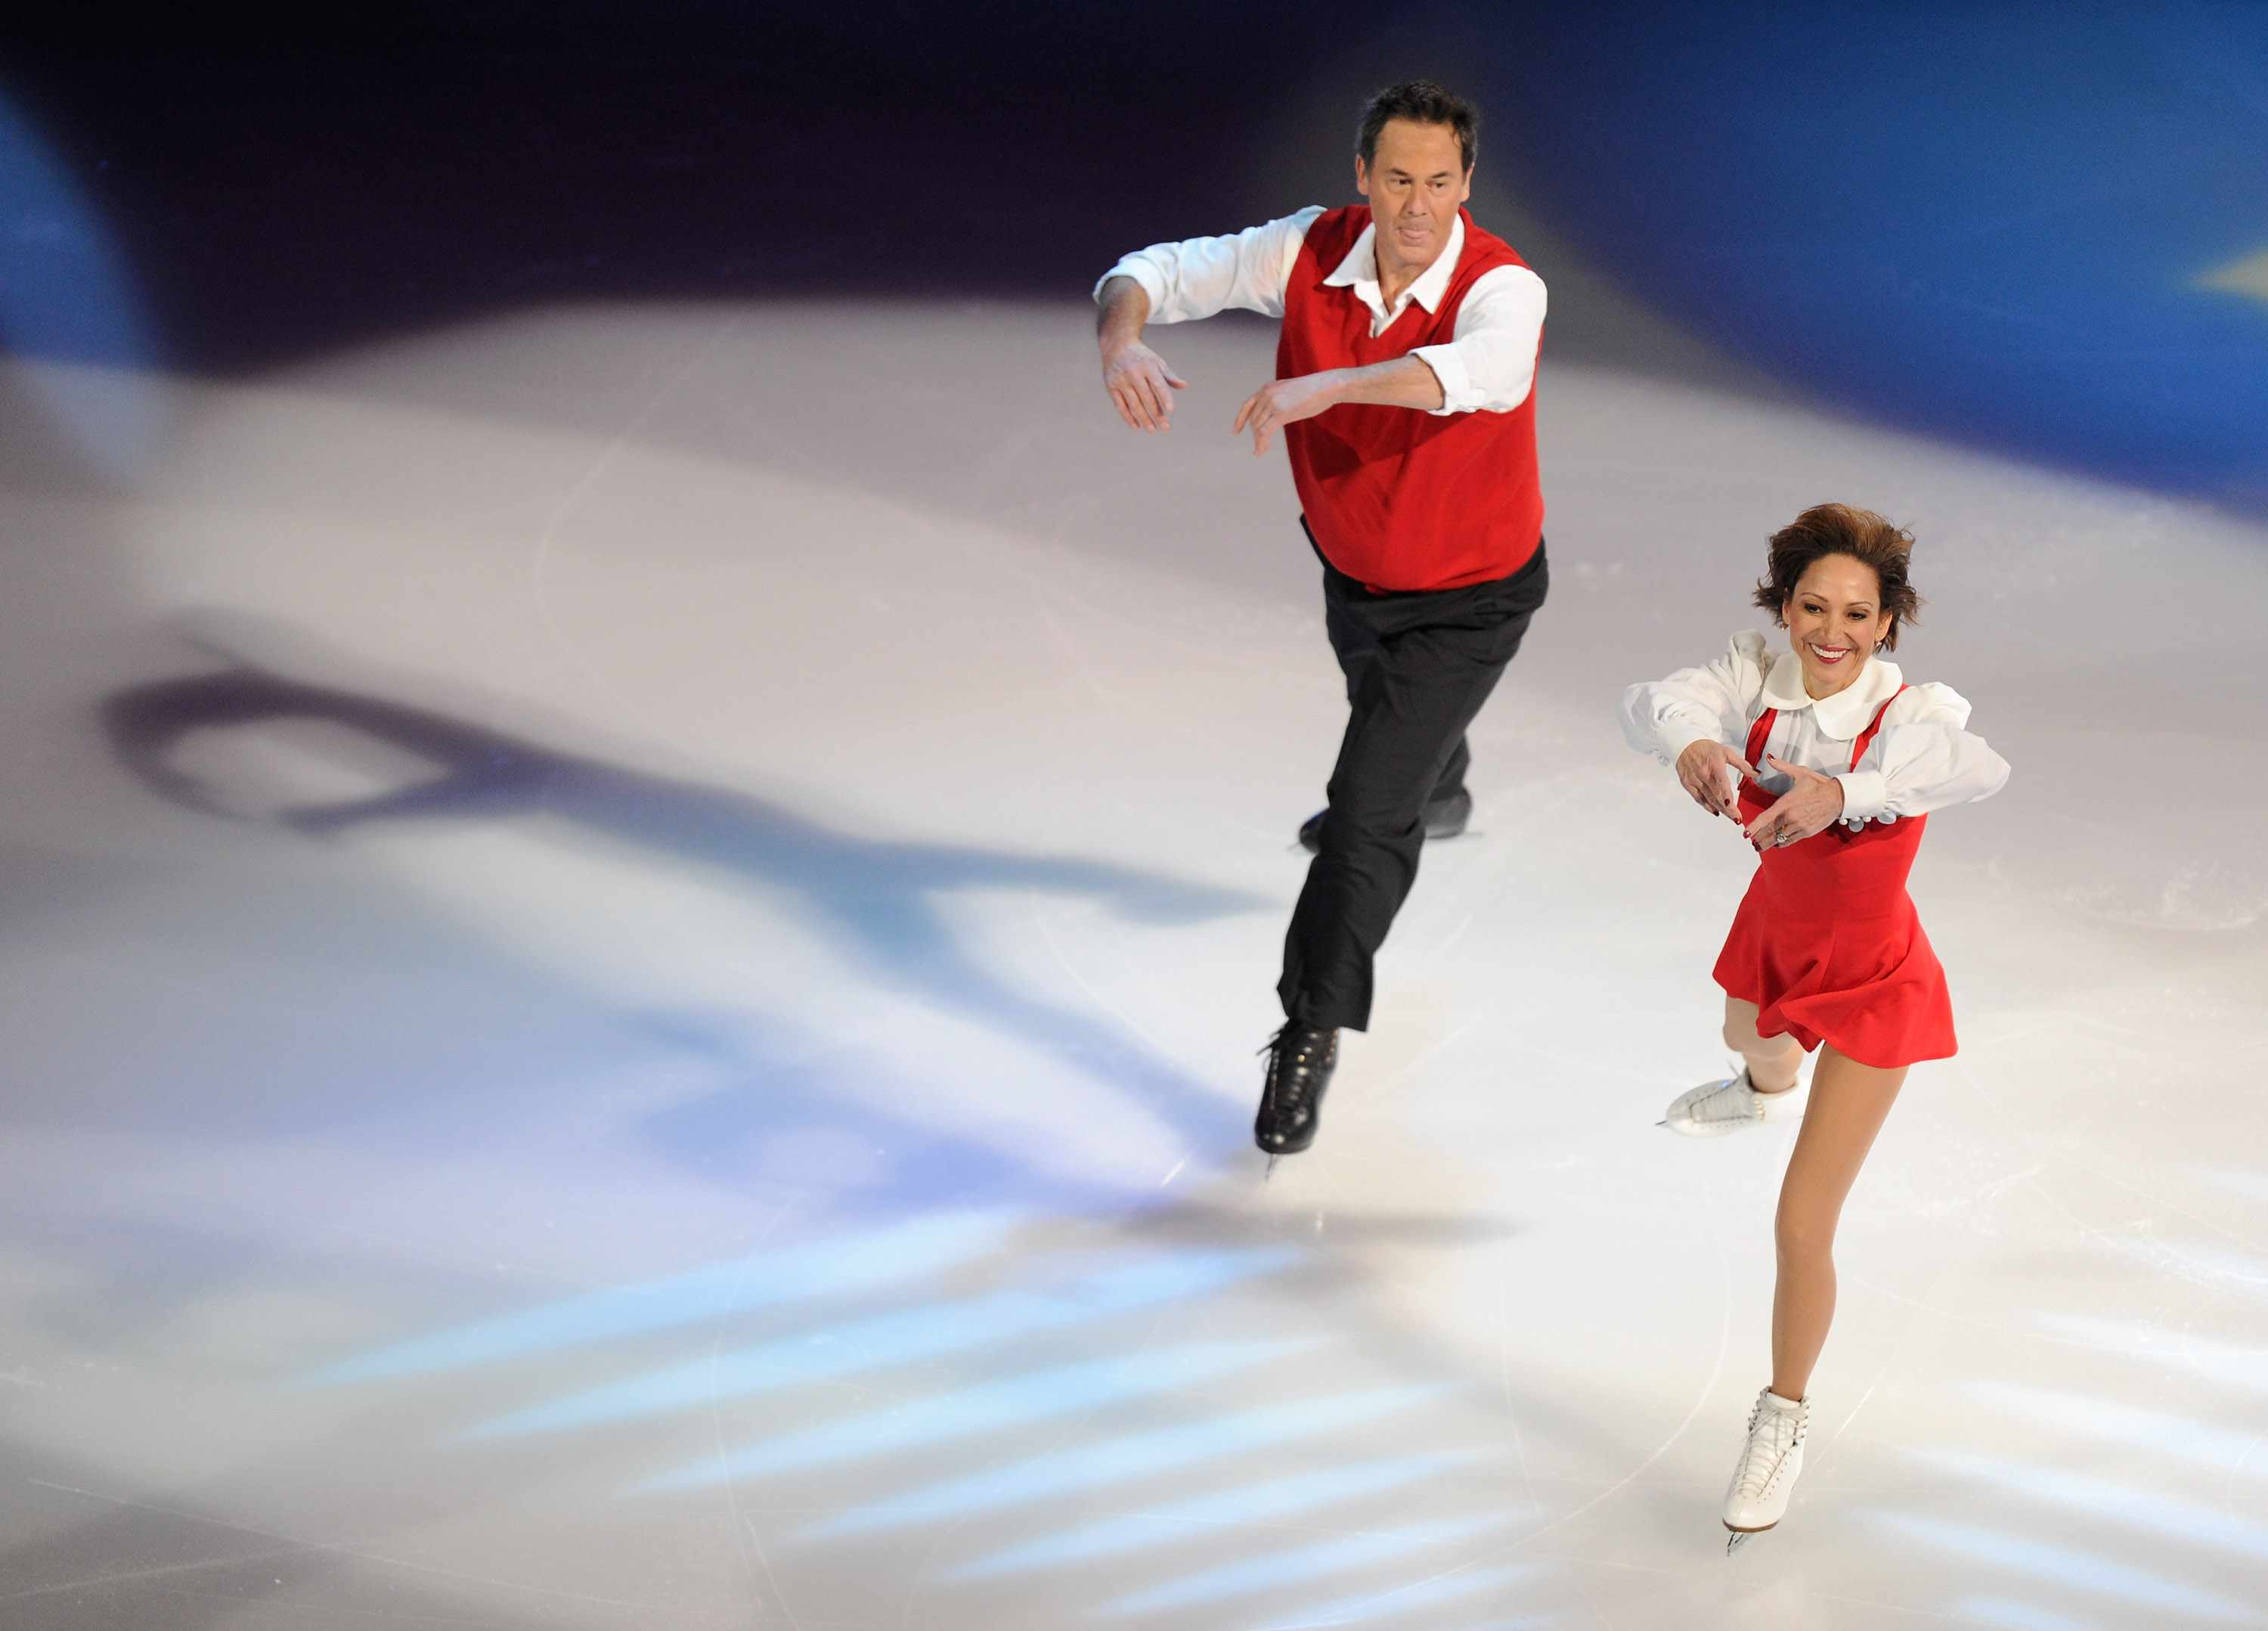 P&G & Wal-Mart 'Tribute to American Legends of the Ice'